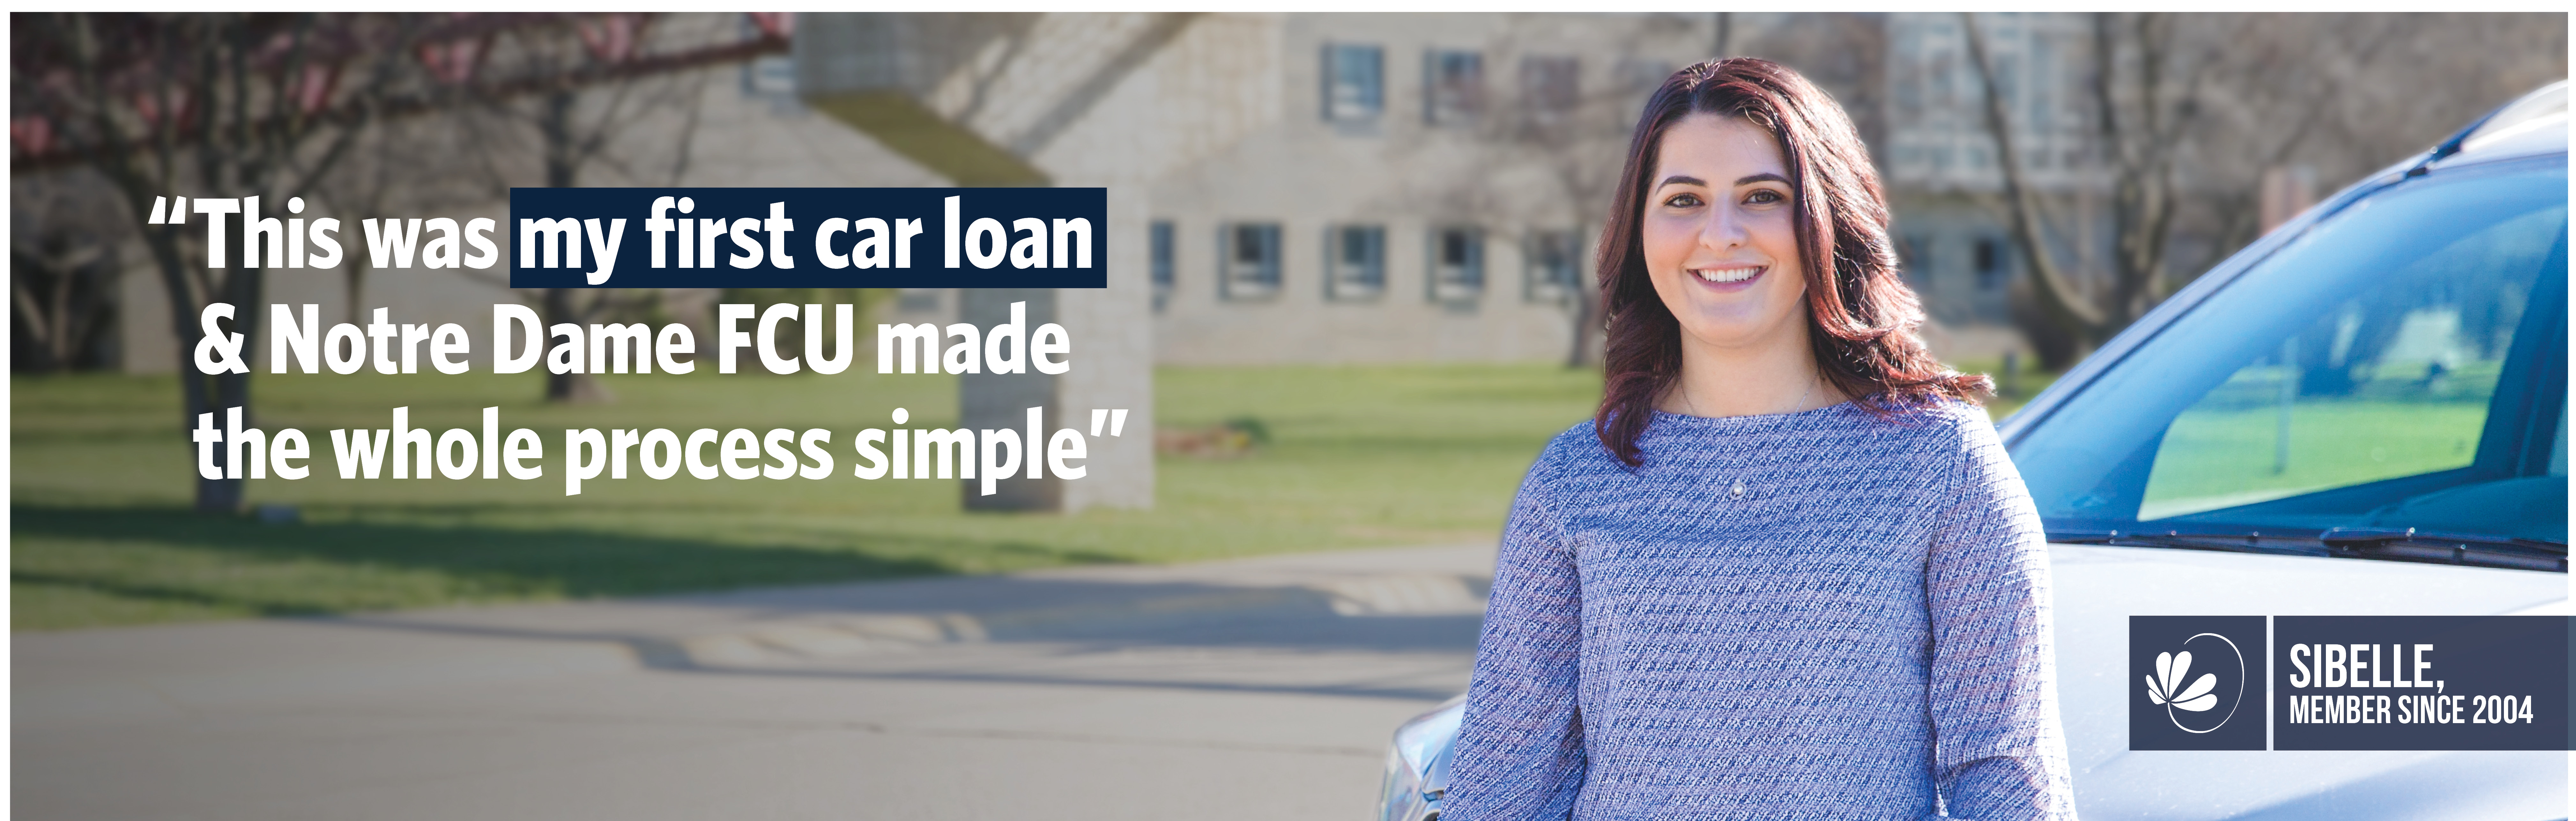 This was my first car loan and Notre Dame FCU made the whole process simple. Sibelle, member since 2004